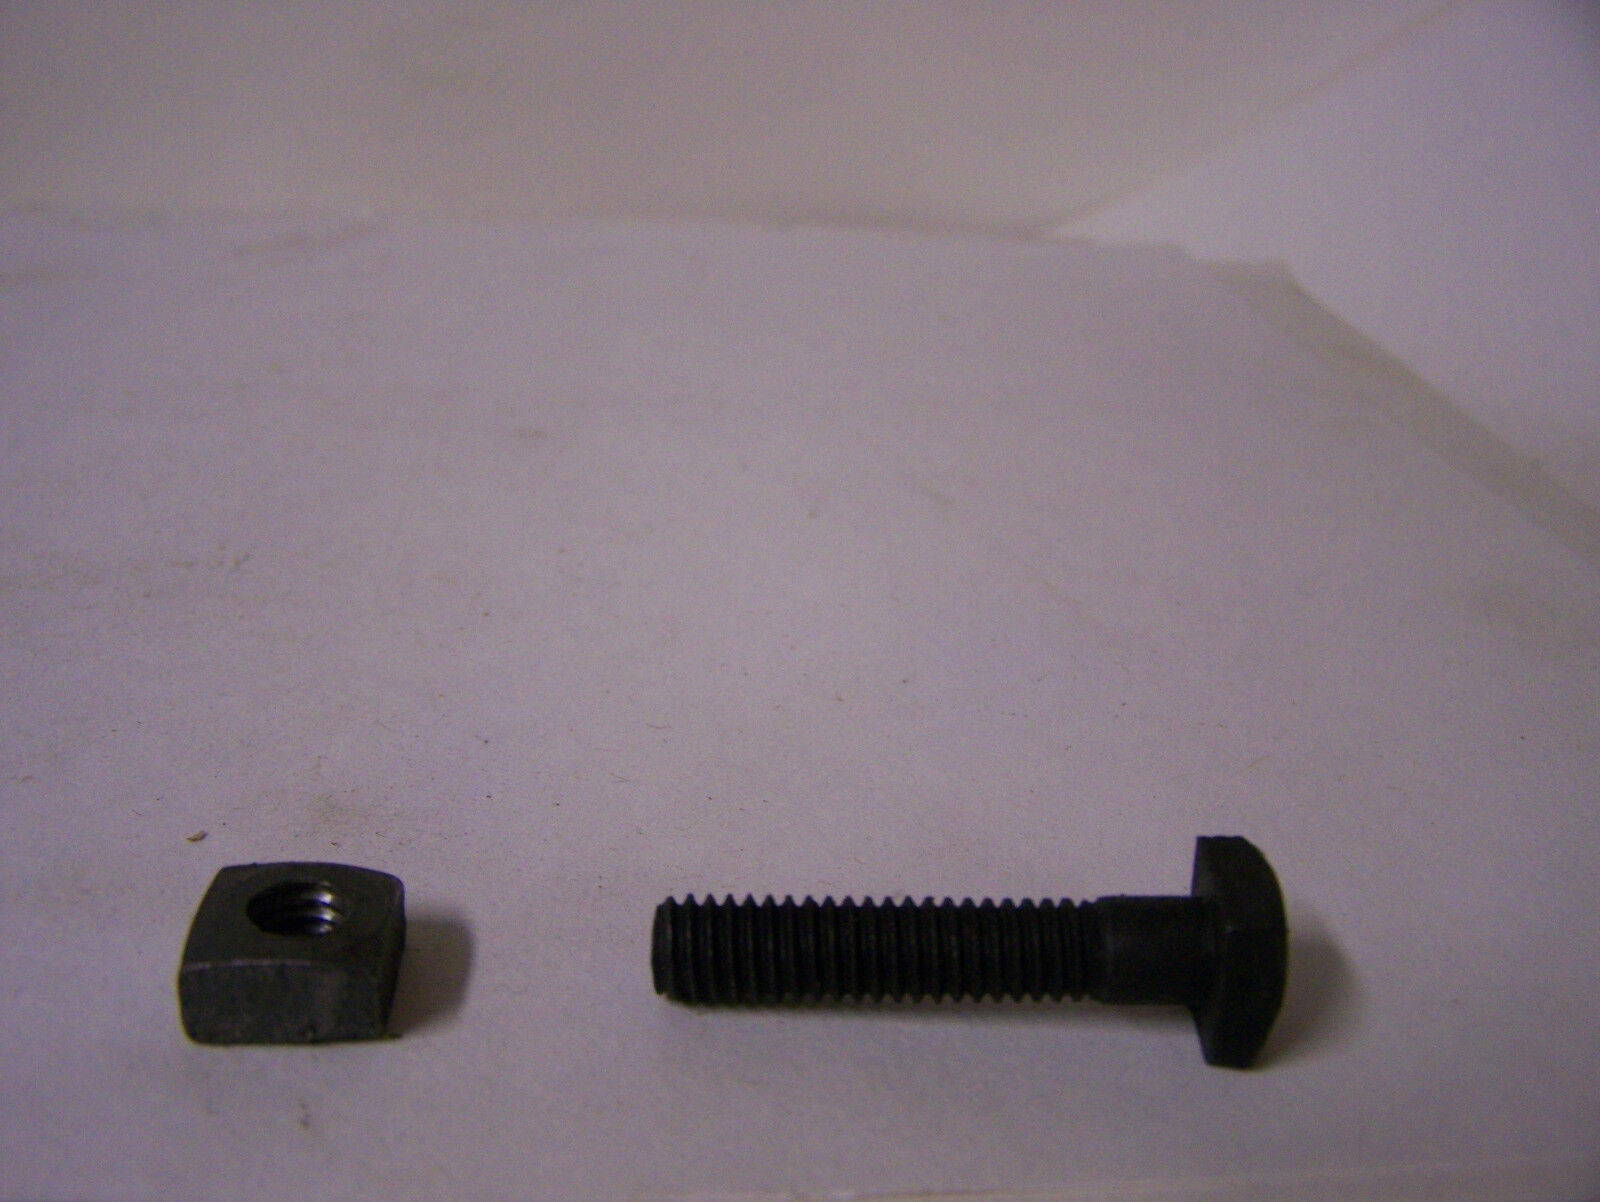 "5/16-18 x 1 1/2"" Square Head Machine Bolts w/Square Nuts Plain Finish Qty. 20"